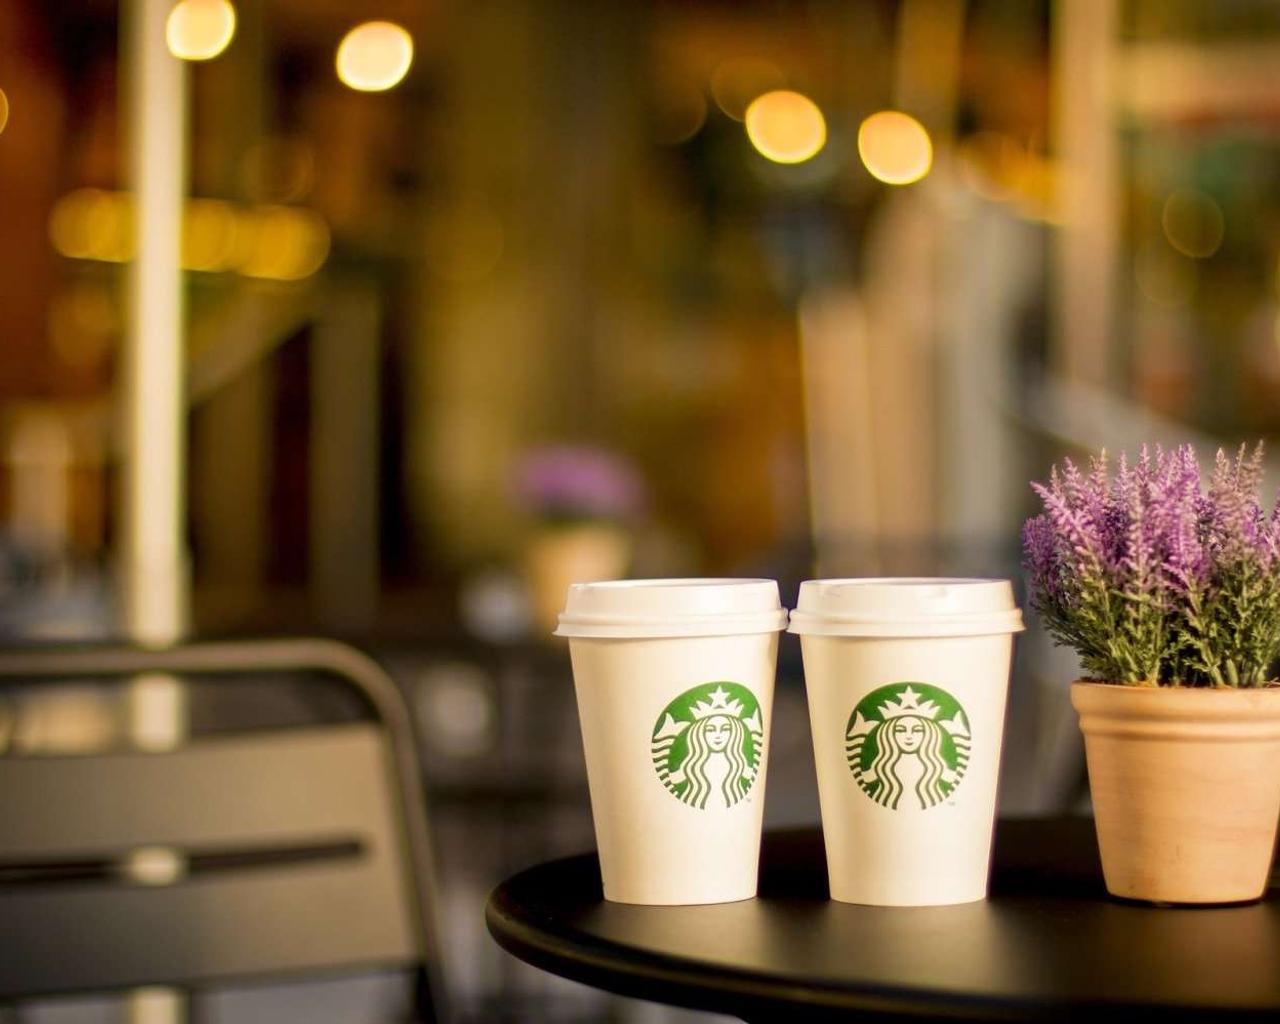 Starbucks Goes Greener: No More Plastic Straws and Non-Recyclable Cups. Would The Competitors Follow?